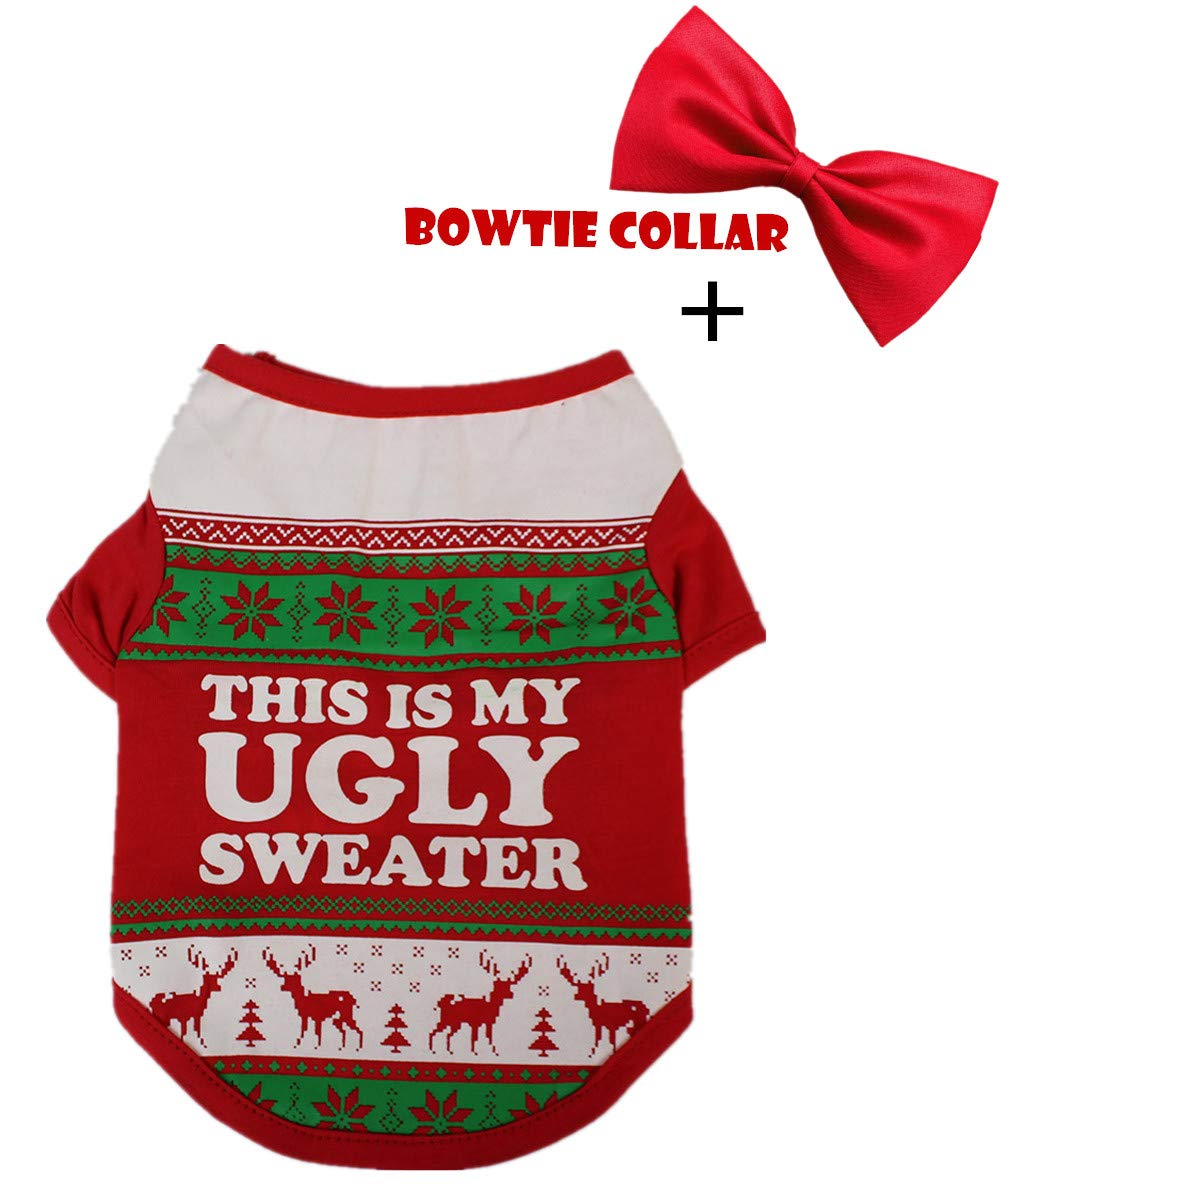 Red Medium Red Medium vmree Dog Apparel, Christmas Small Pet Dogs Clothing T-Shirt + Bowtie Collar